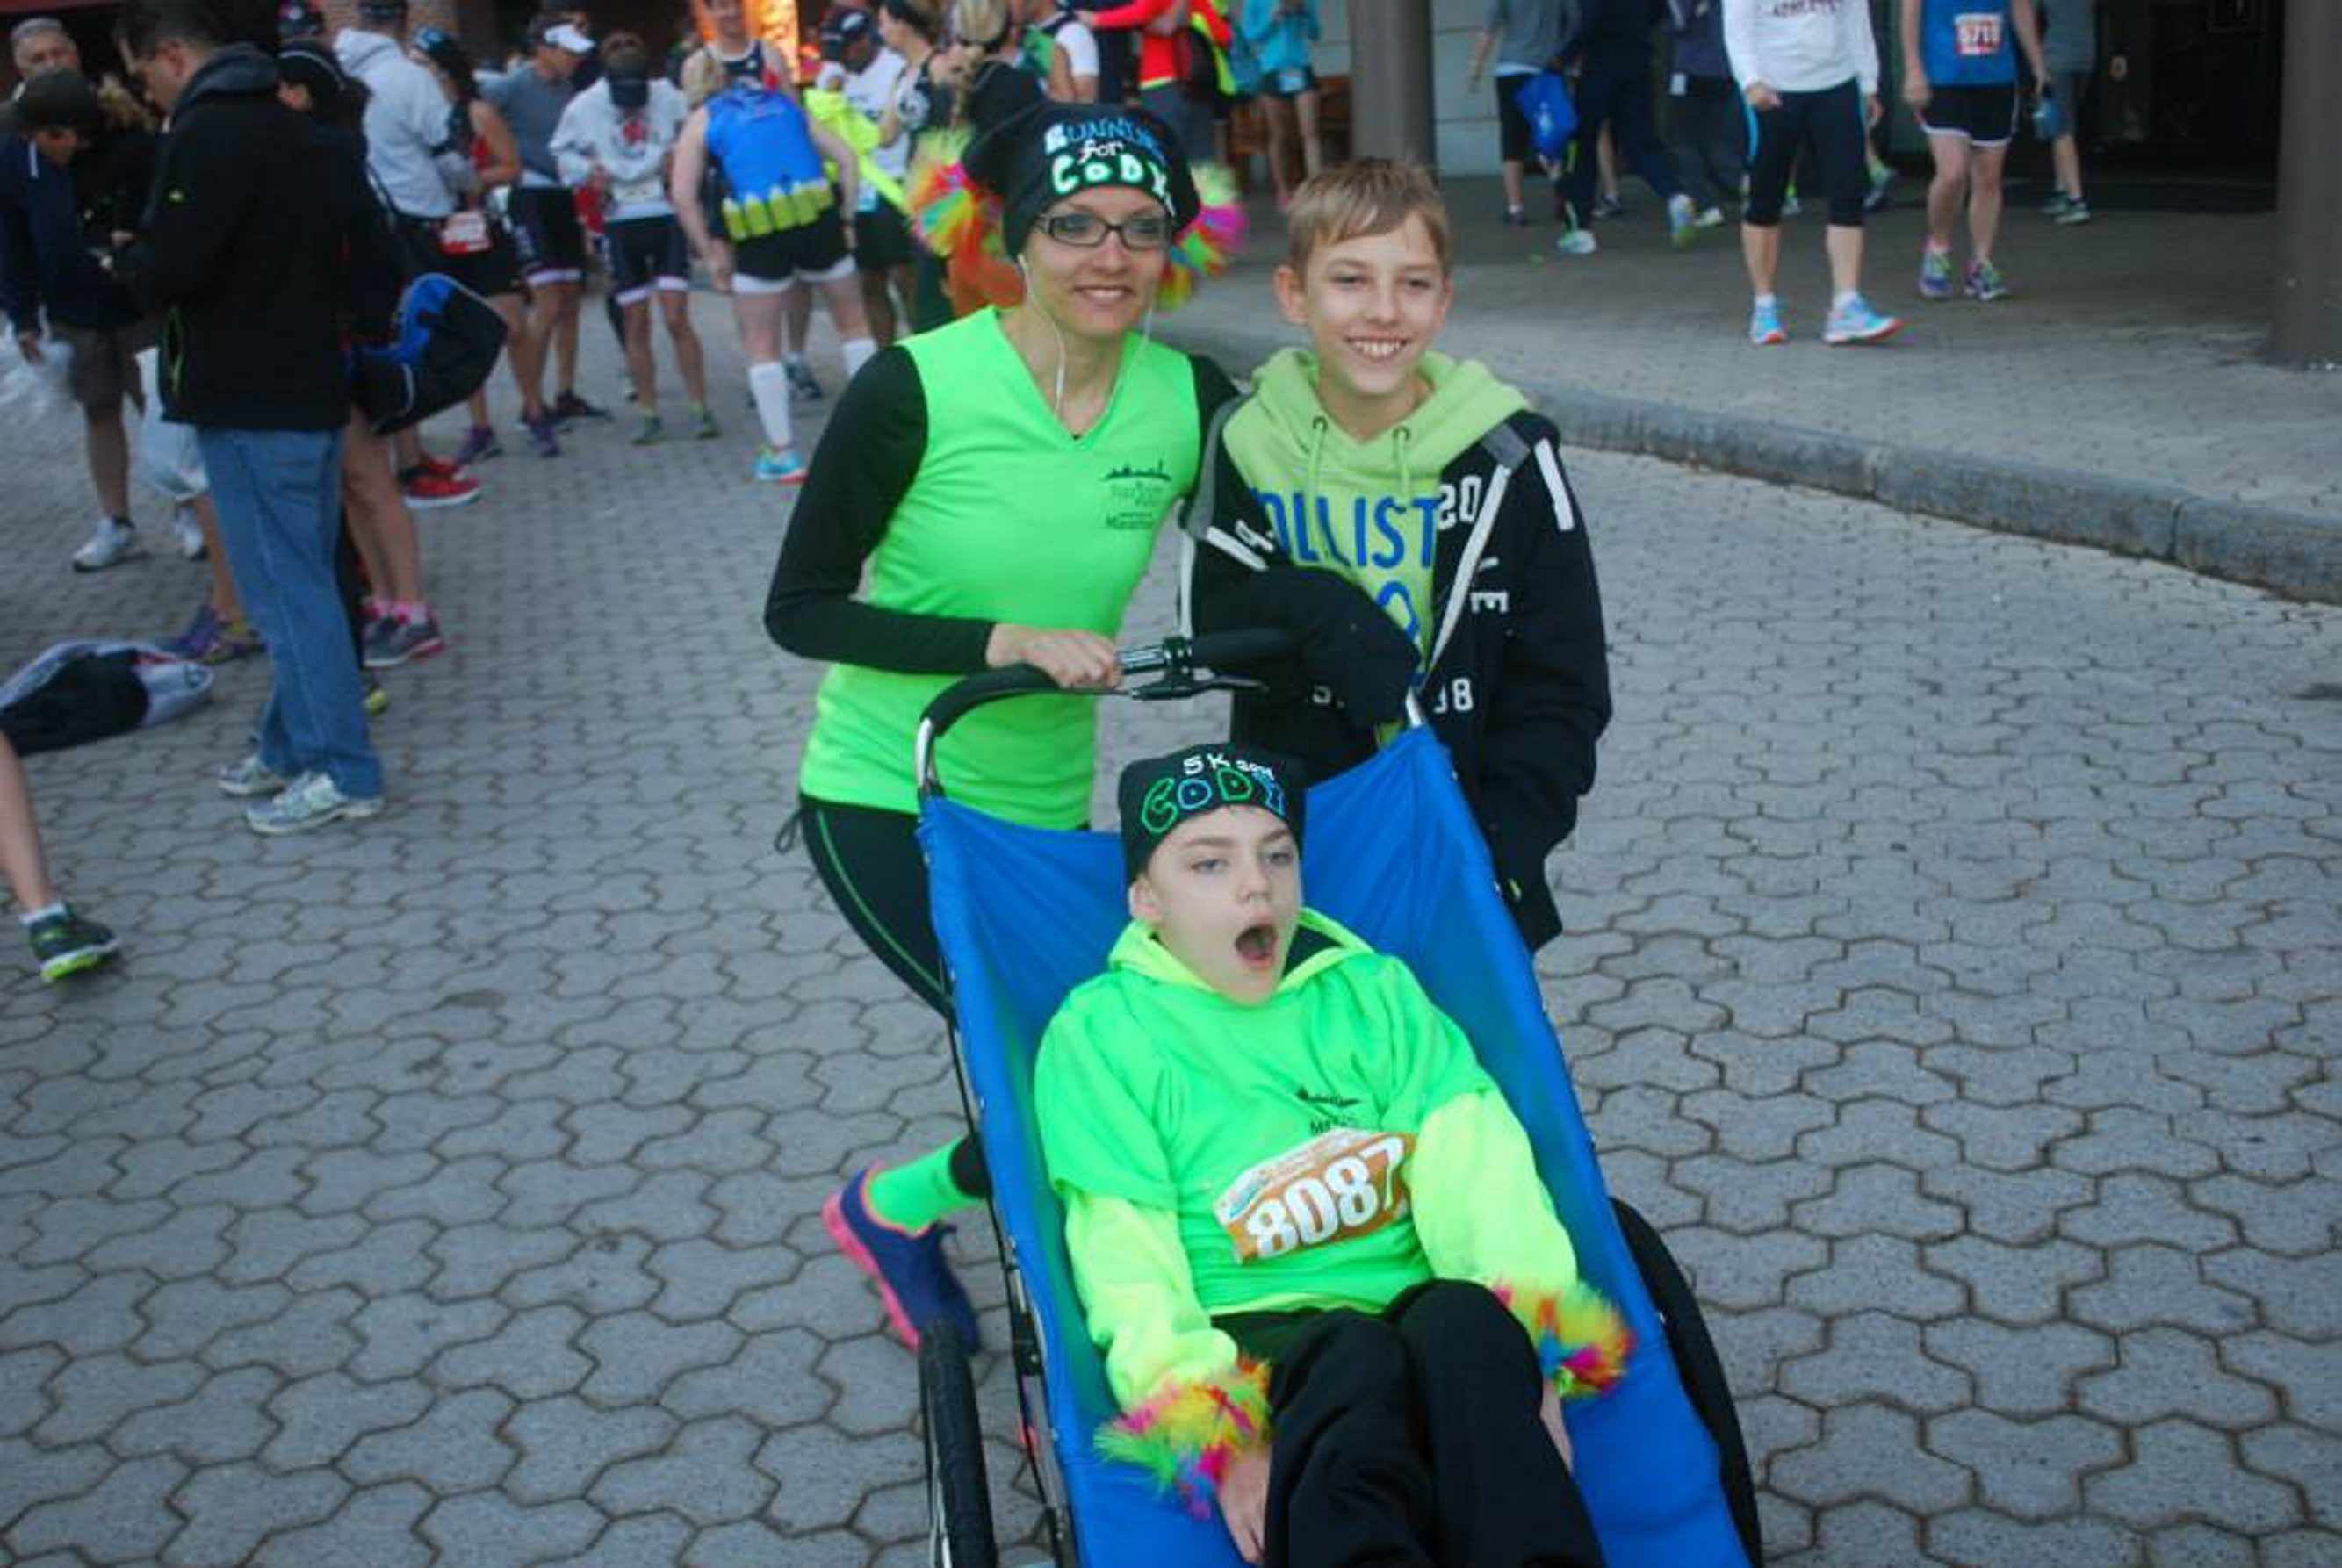 This photo from Lisa Cwiklinski shows twins Cody, center, and Justin Cwiklinski with their friend, Jen Kellerman.